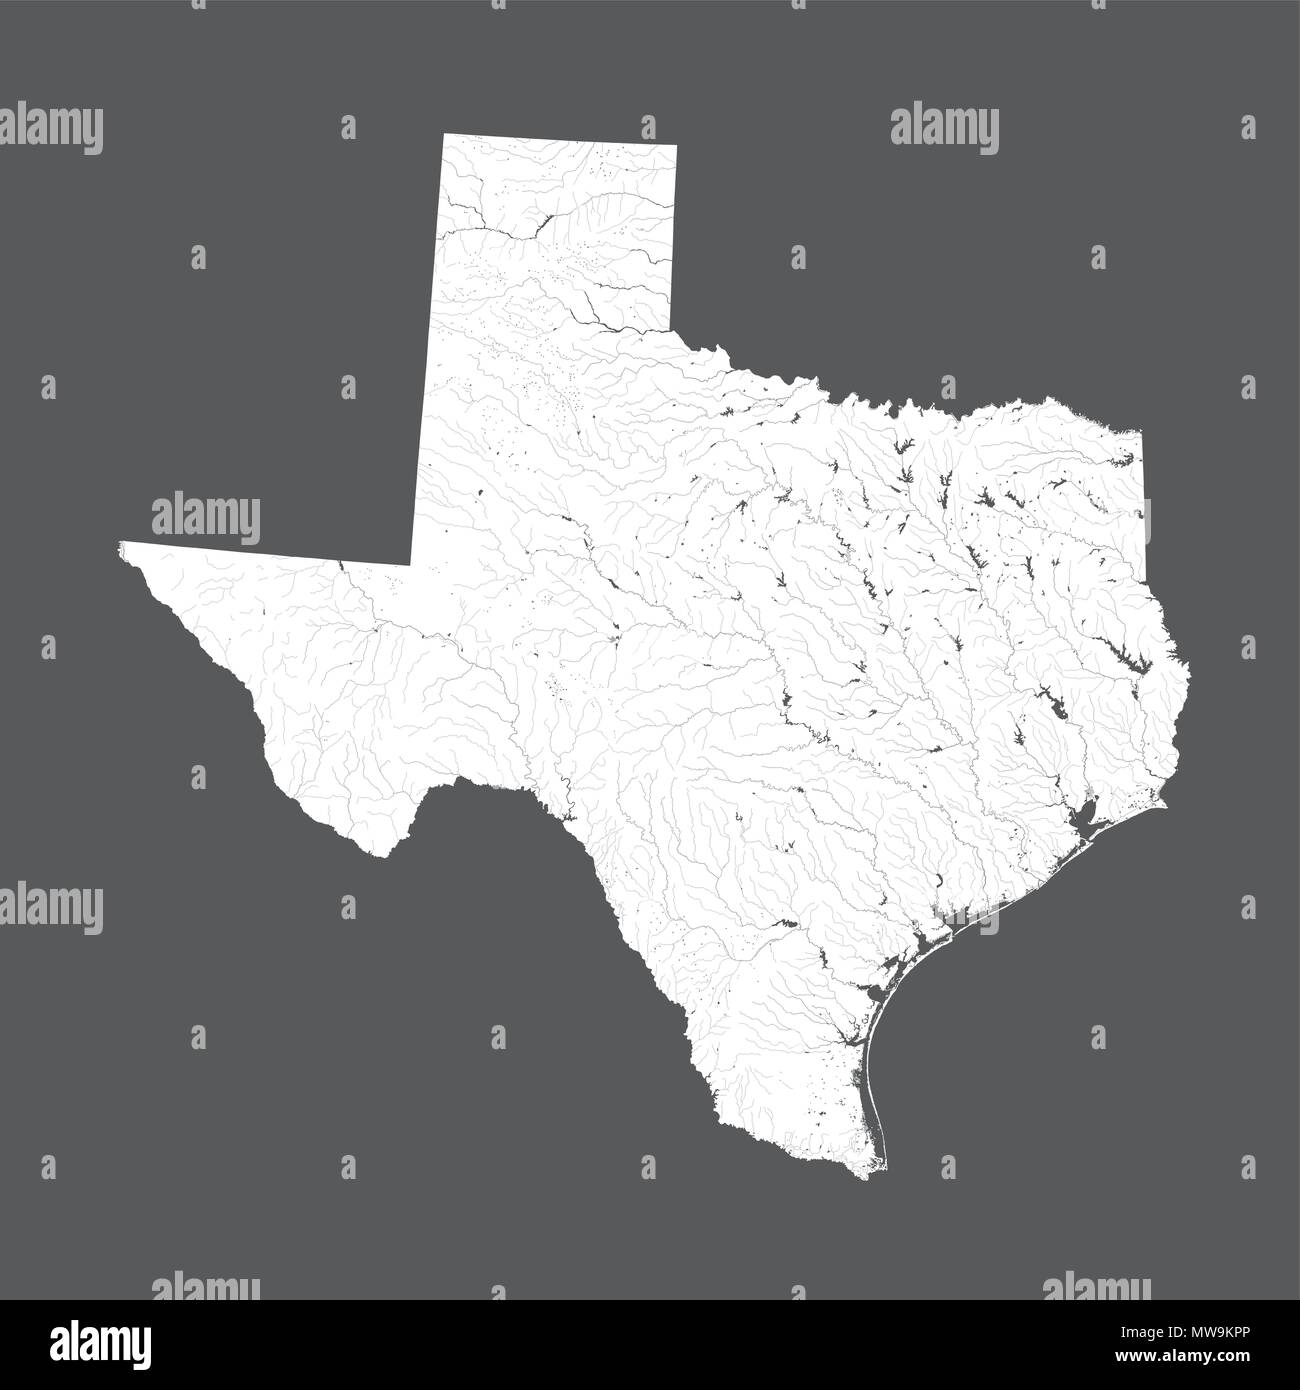 U.S. states - map of Texas. Hand made. Rivers and lakes are shown. Please look at my other images of cartographic series - they are all very detailed  - Stock Vector